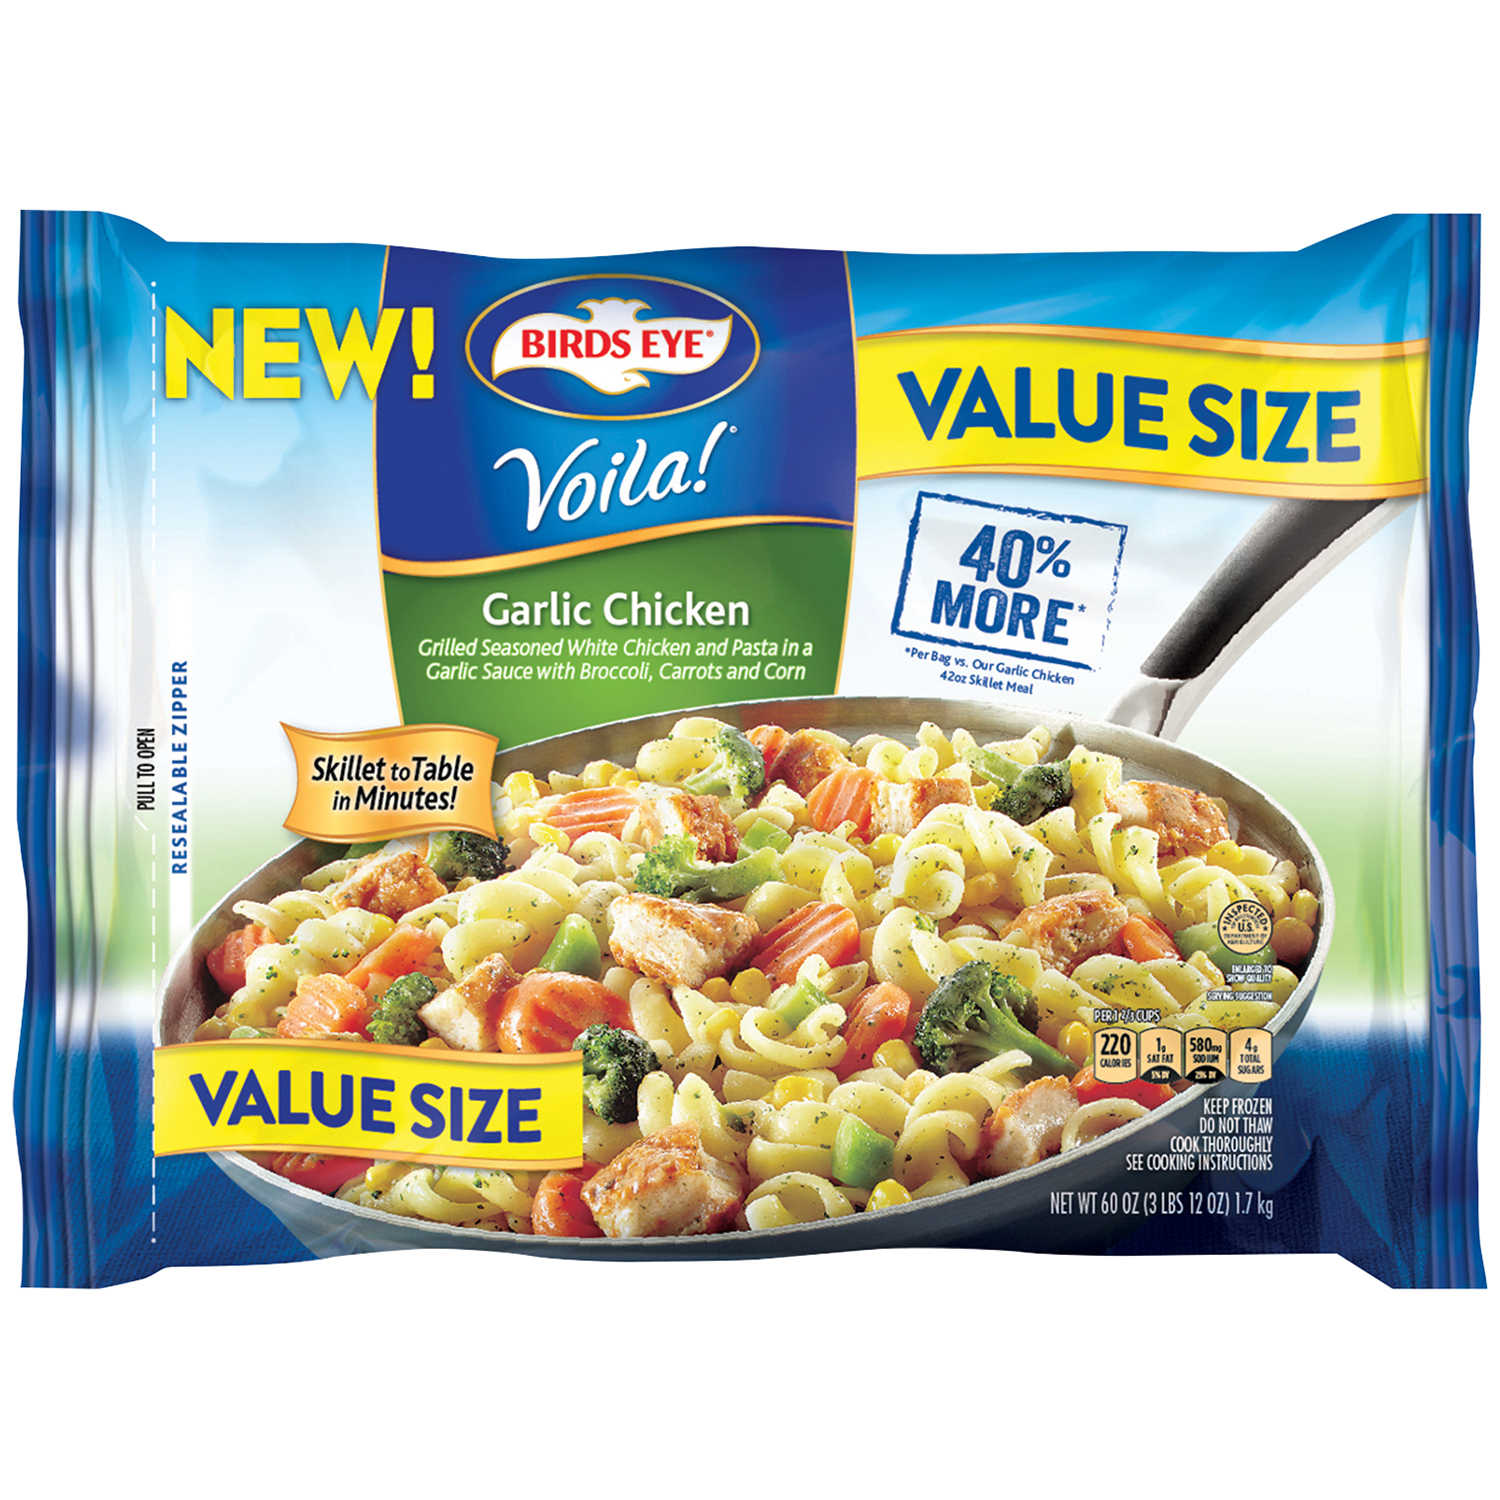 Birds Eye® Voila!® Garlic Chicken Value Size